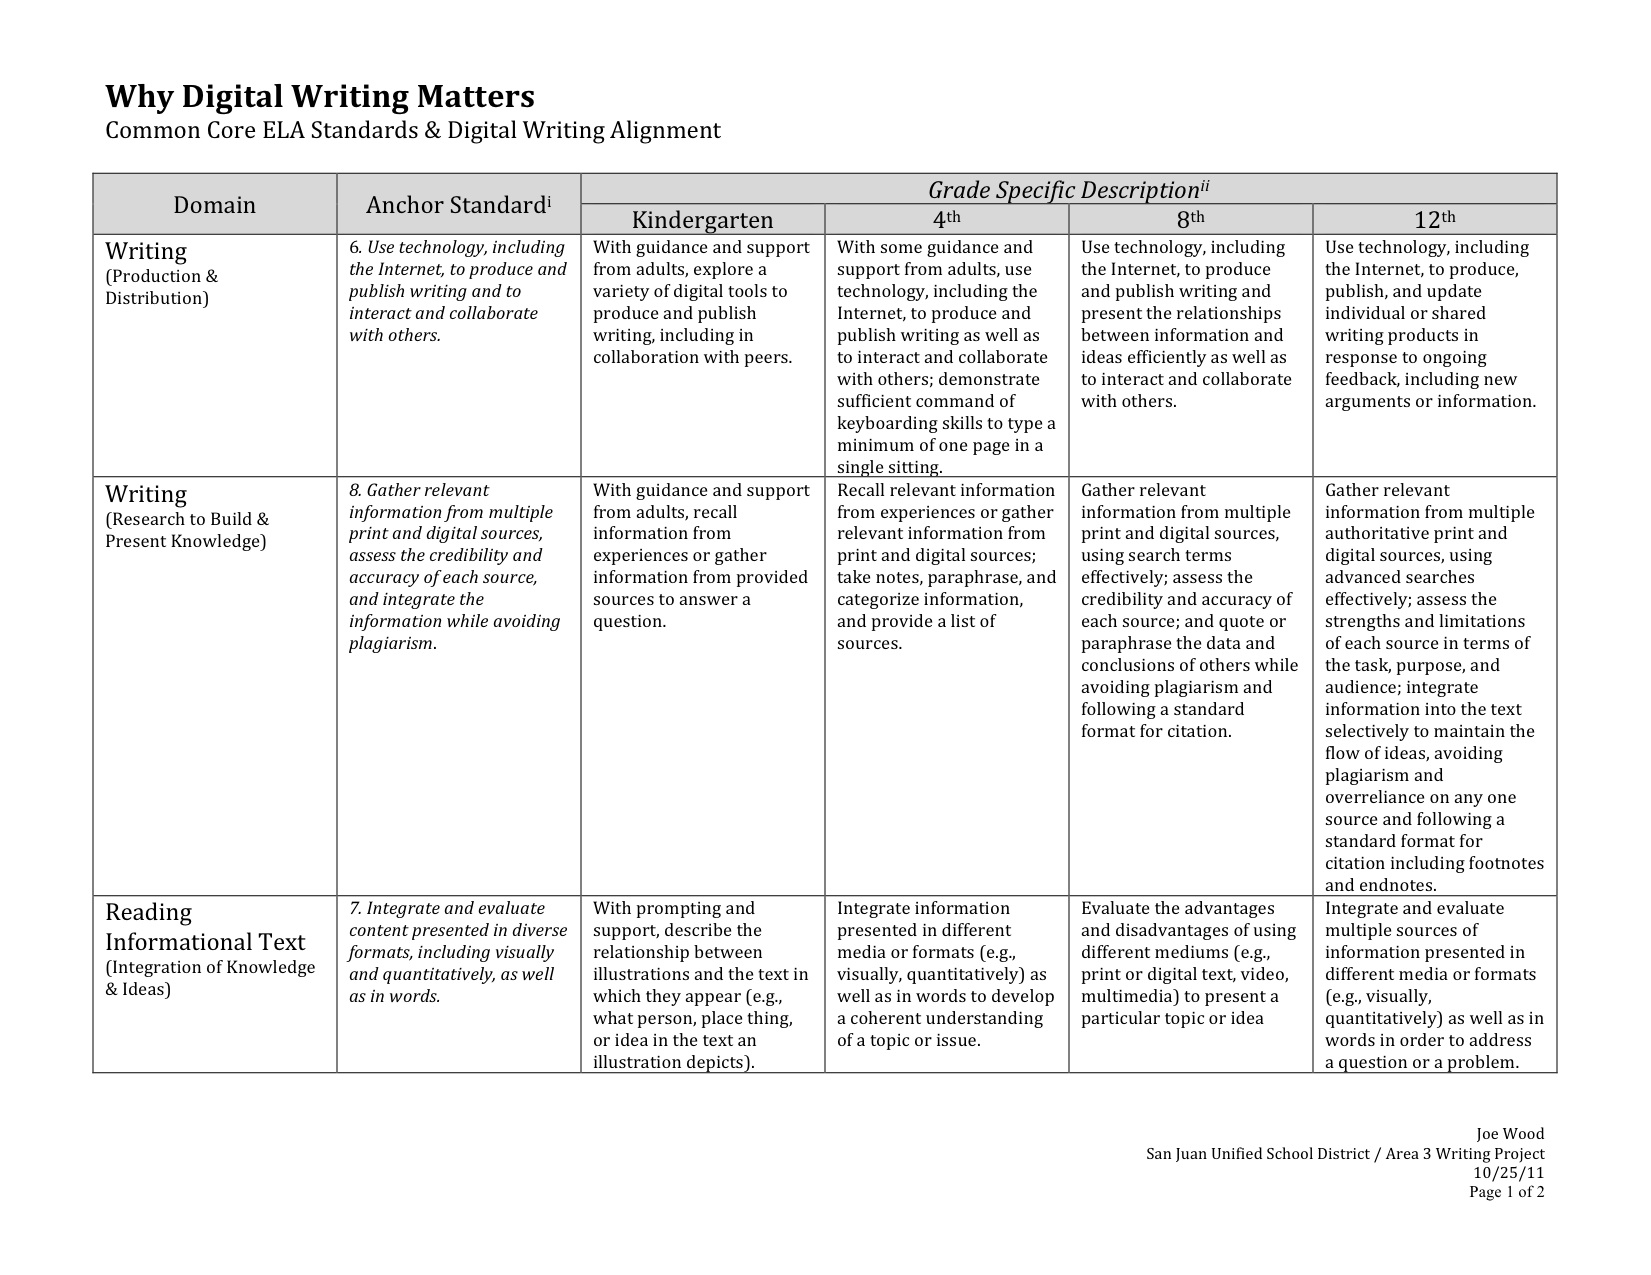 003 Middle School Research Paper Rubric Why Digital Writing Matters According To The Common Core Ela Dreaded Science Fair Full